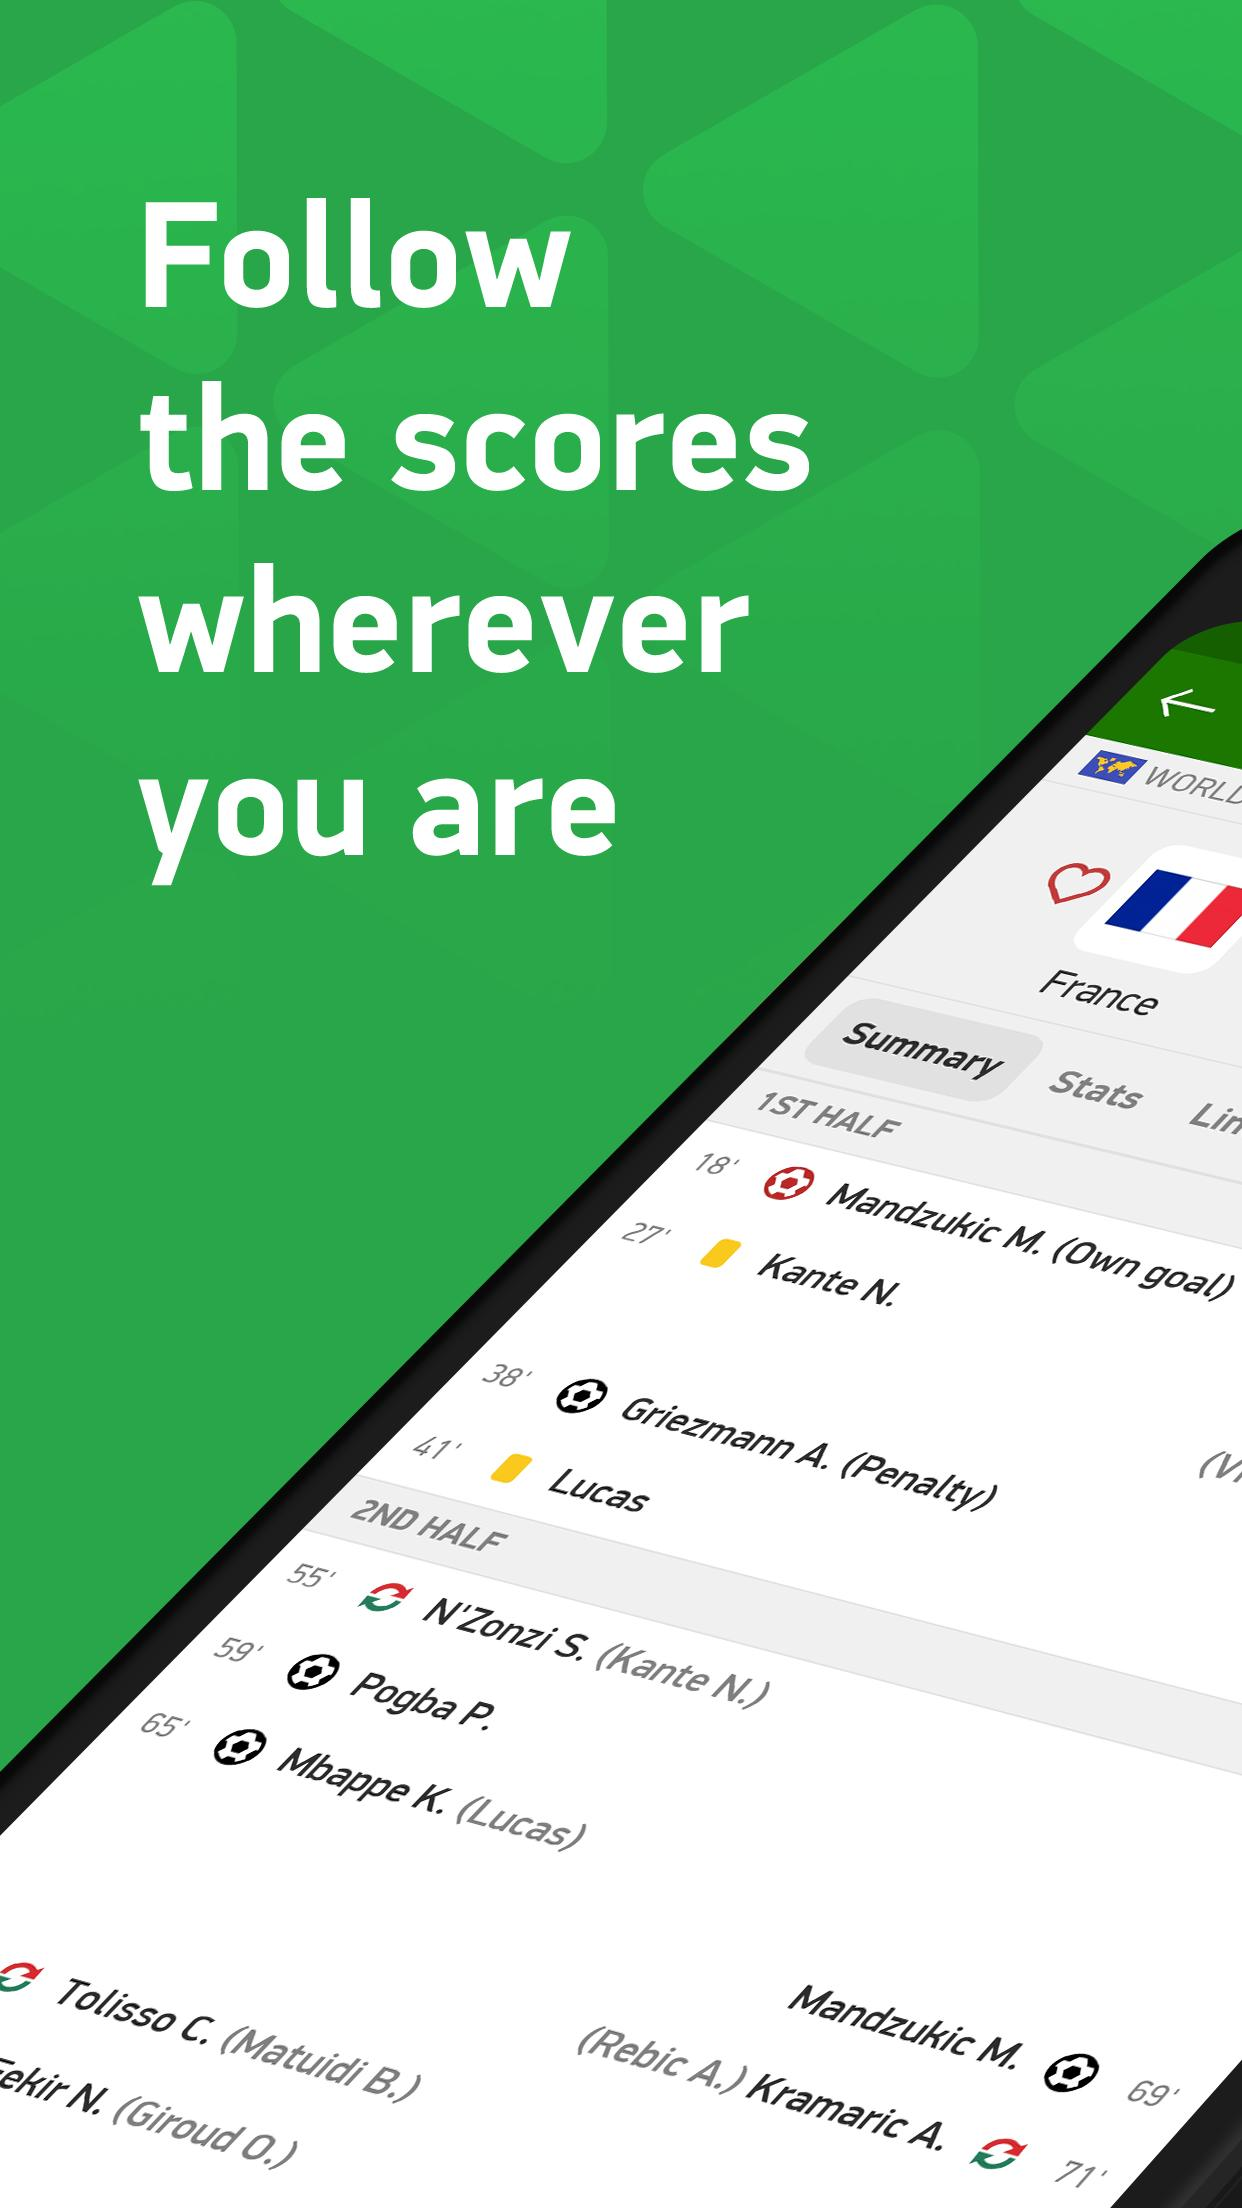 Flashscore Kenya For Android Apk Download